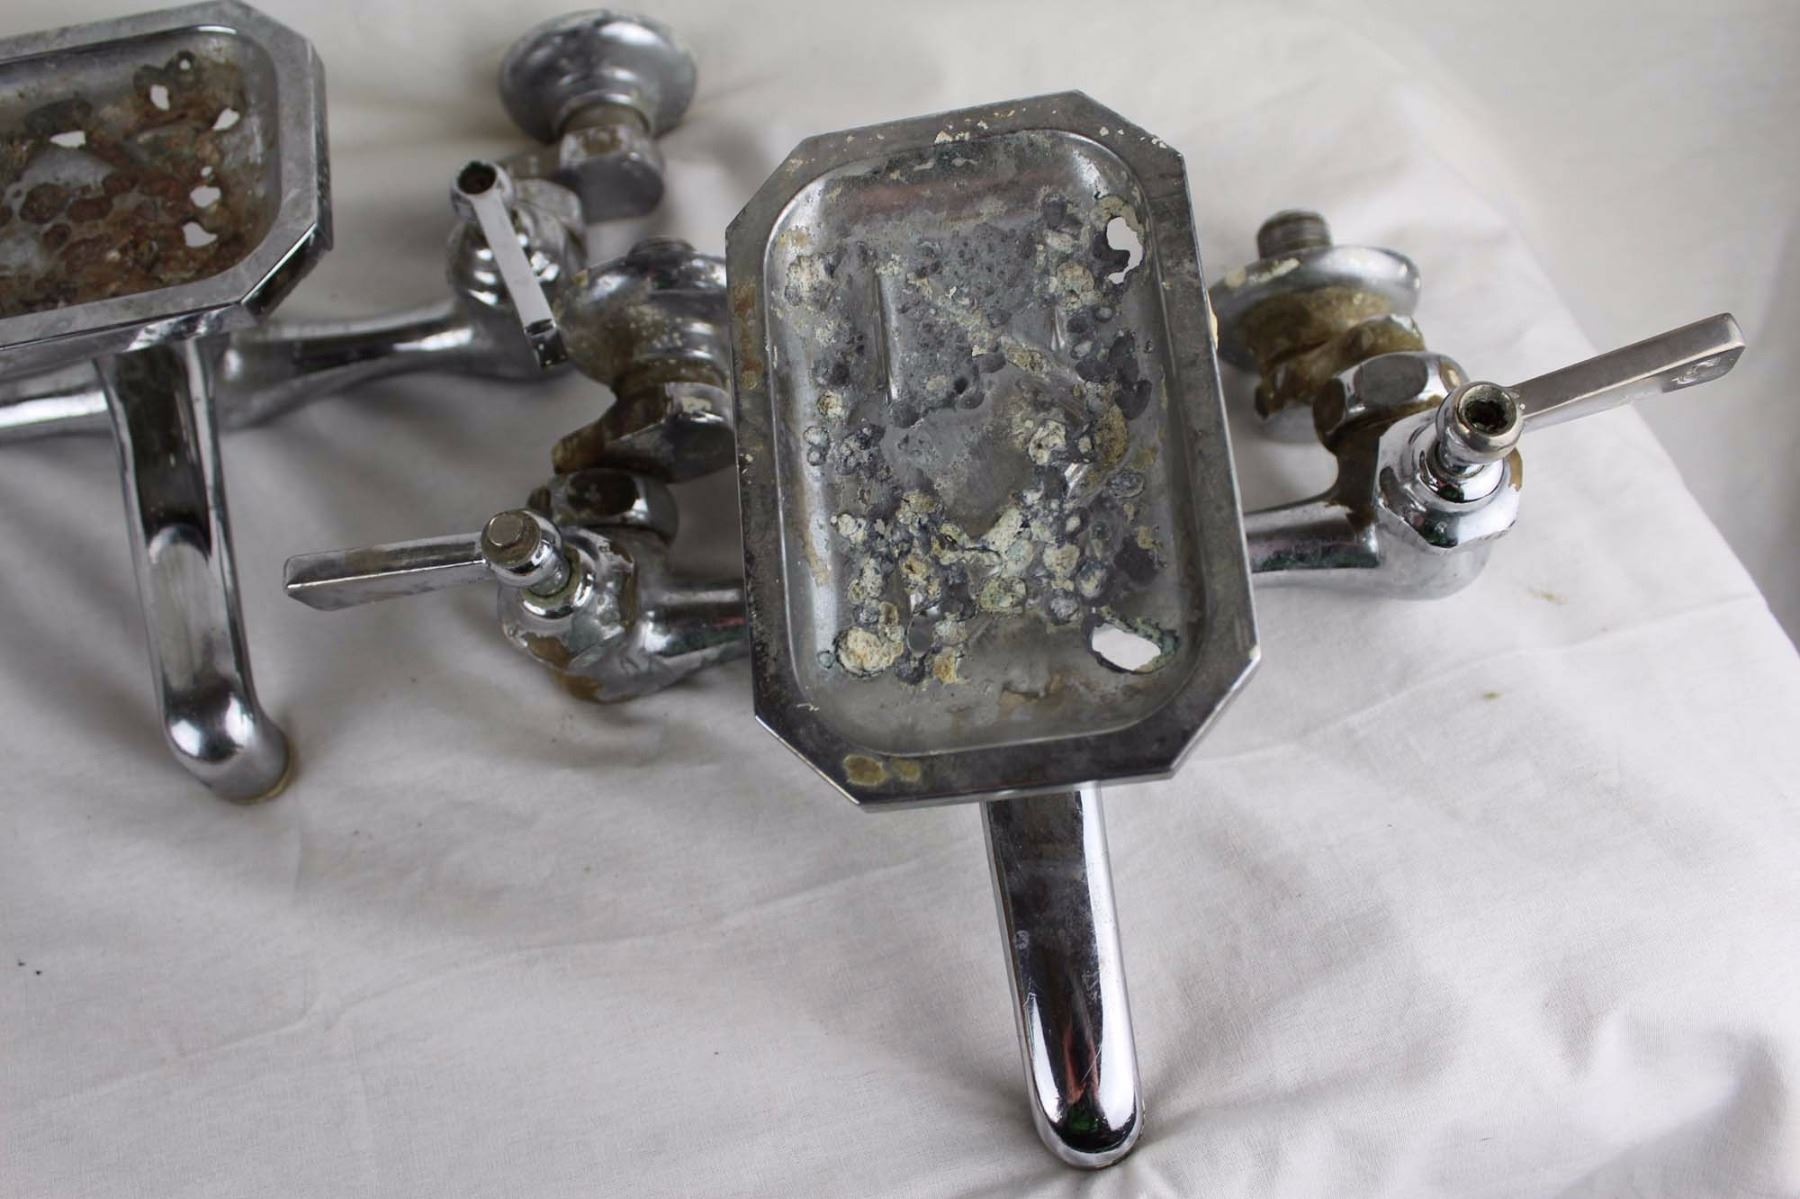 Set of Antique Taps (2)